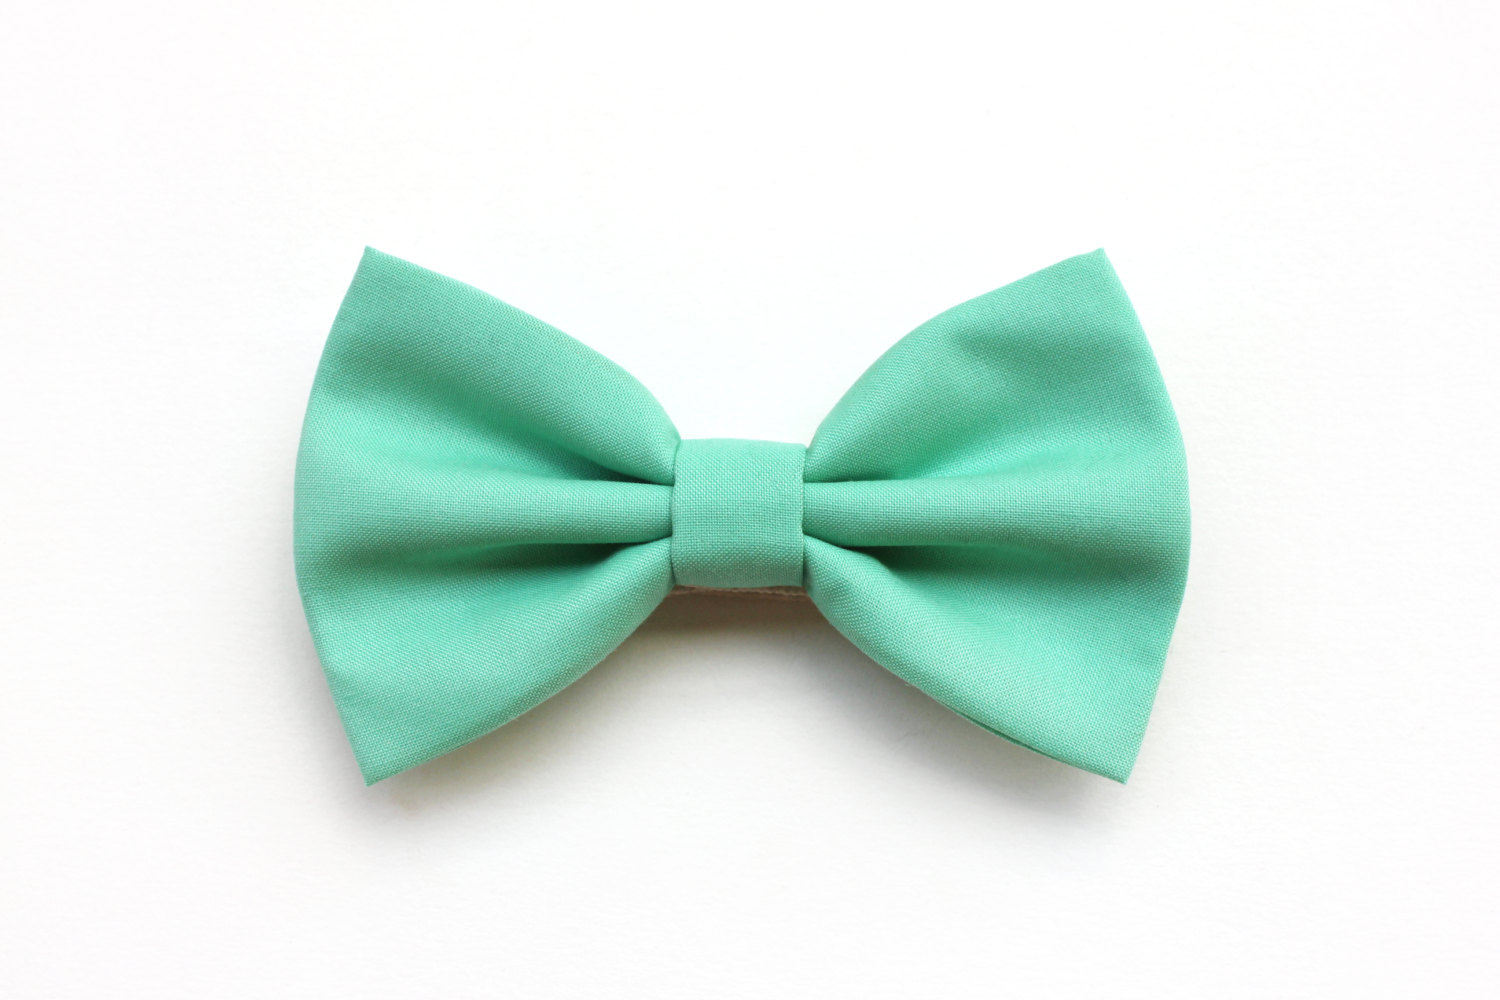 Mint green gift clipart png transparent download Men's wedding bow tie mint green bow tie for the groom png transparent download